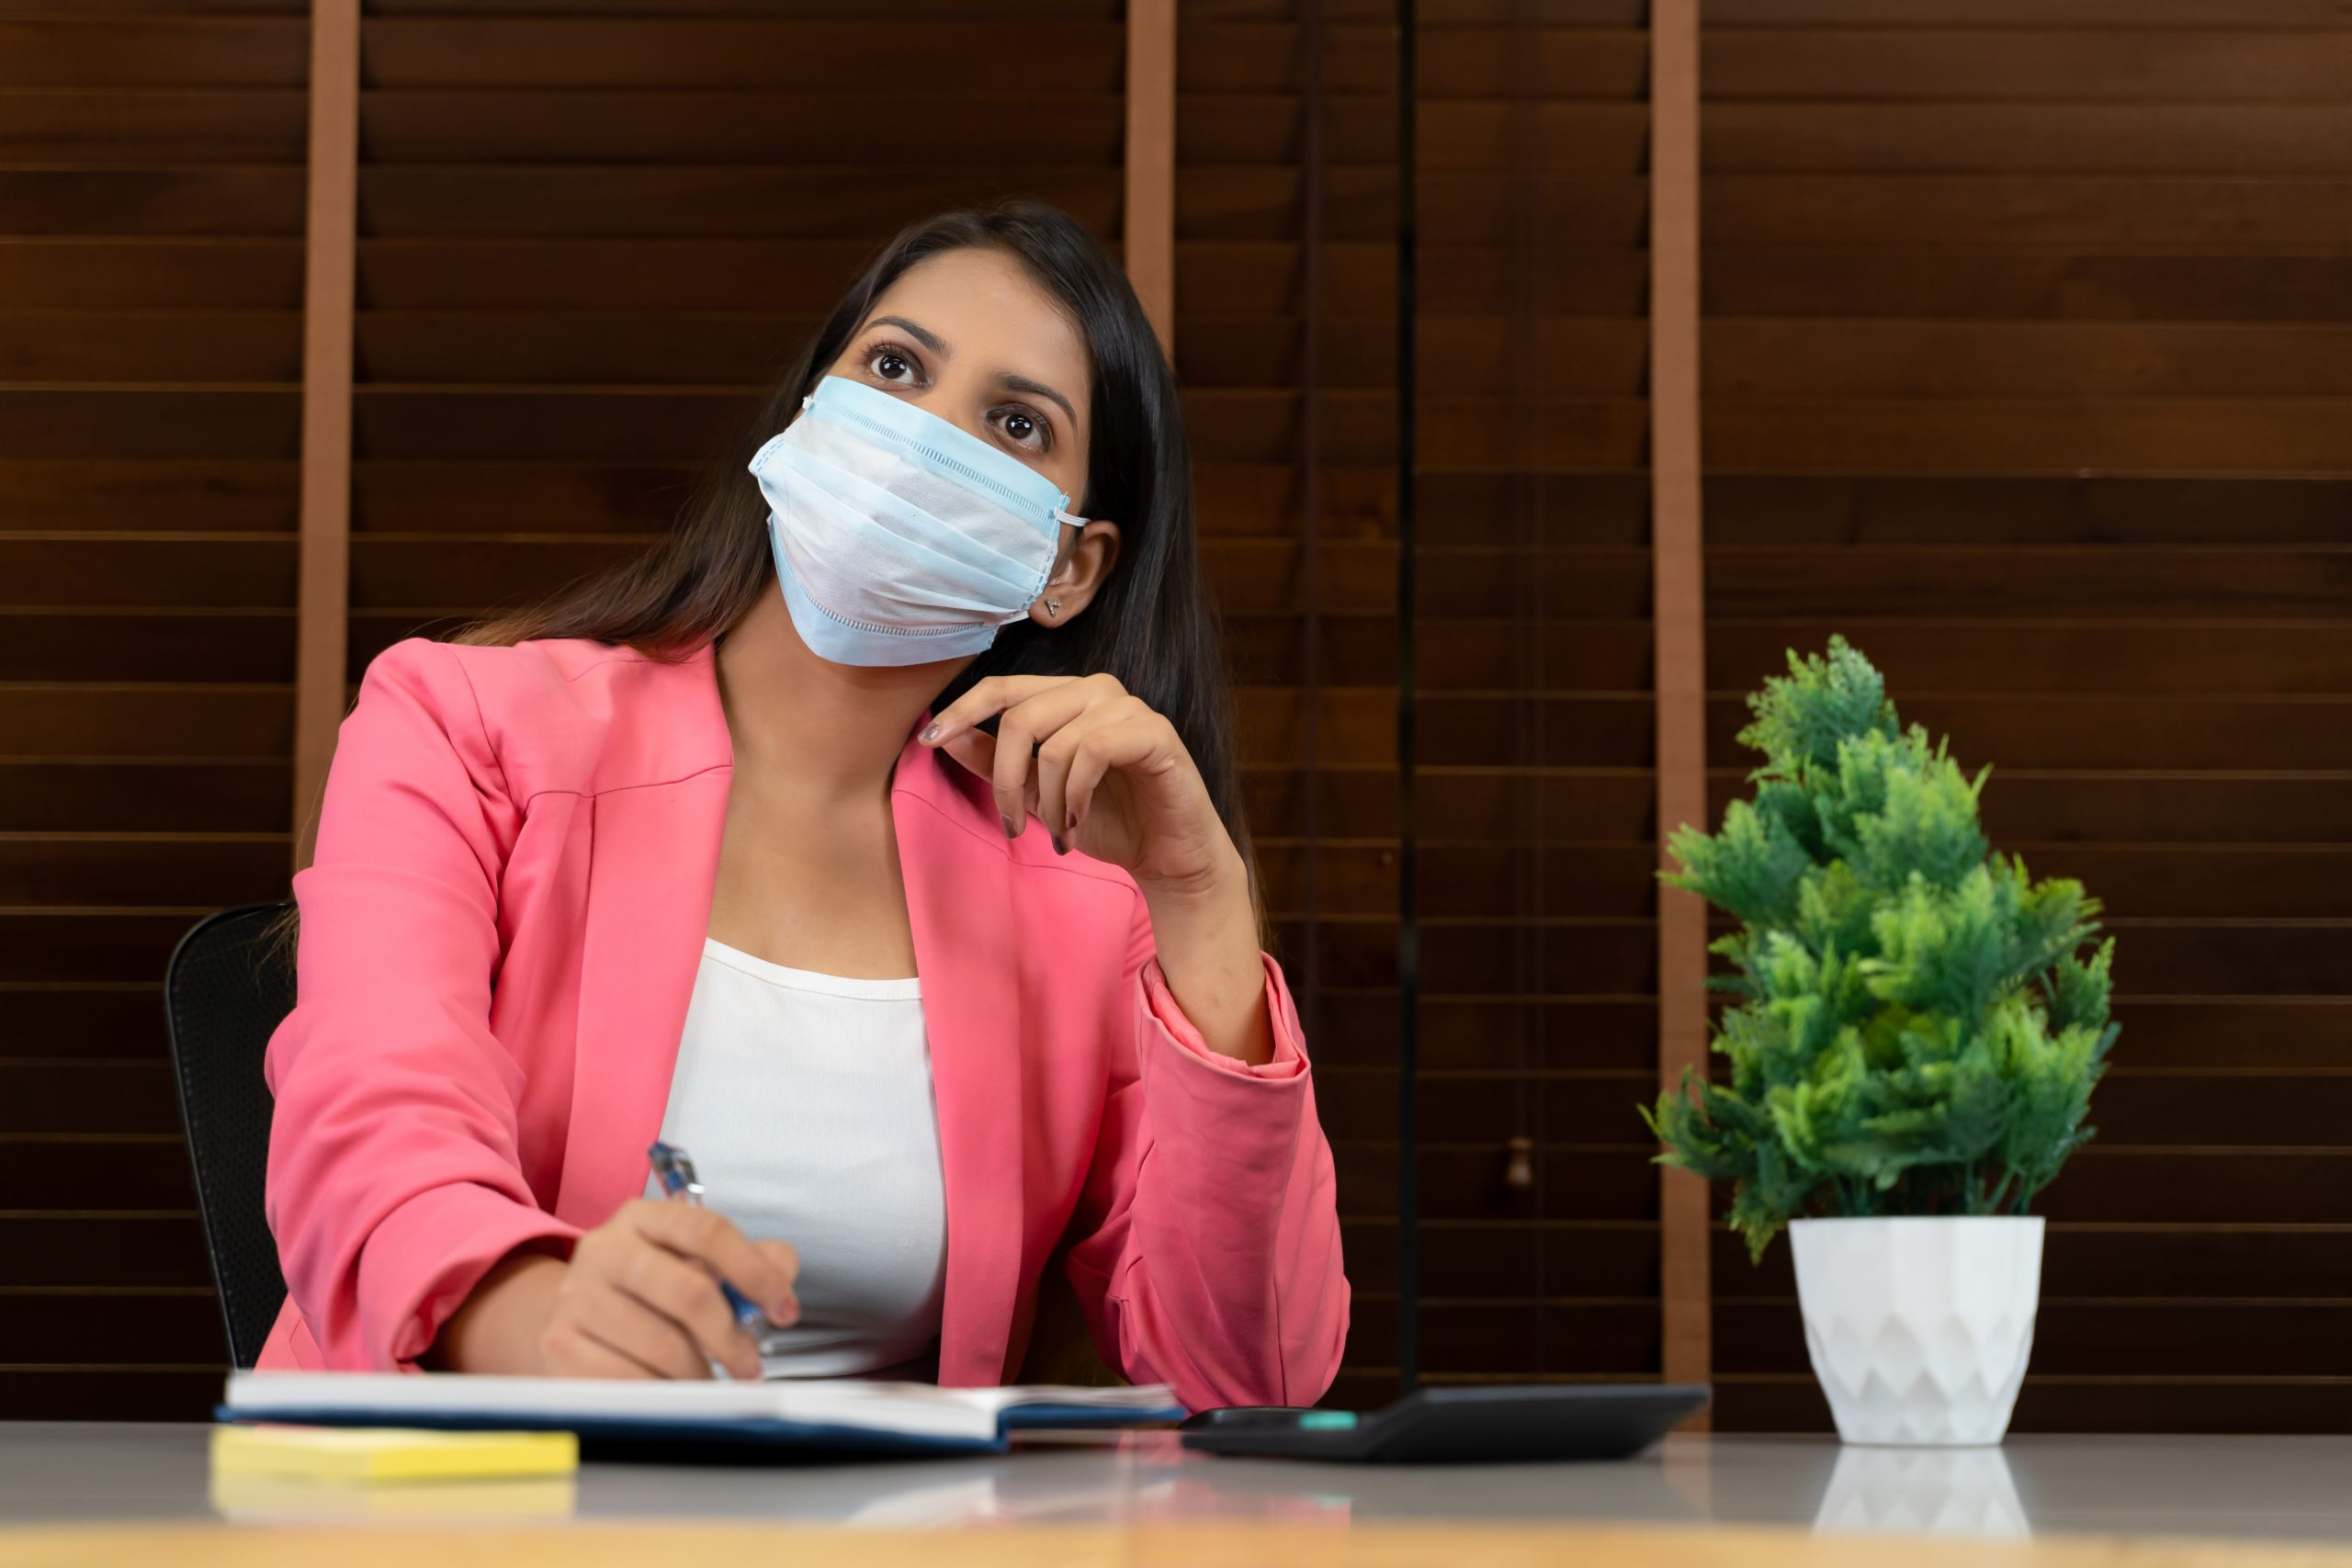 Young professional working in pandemic